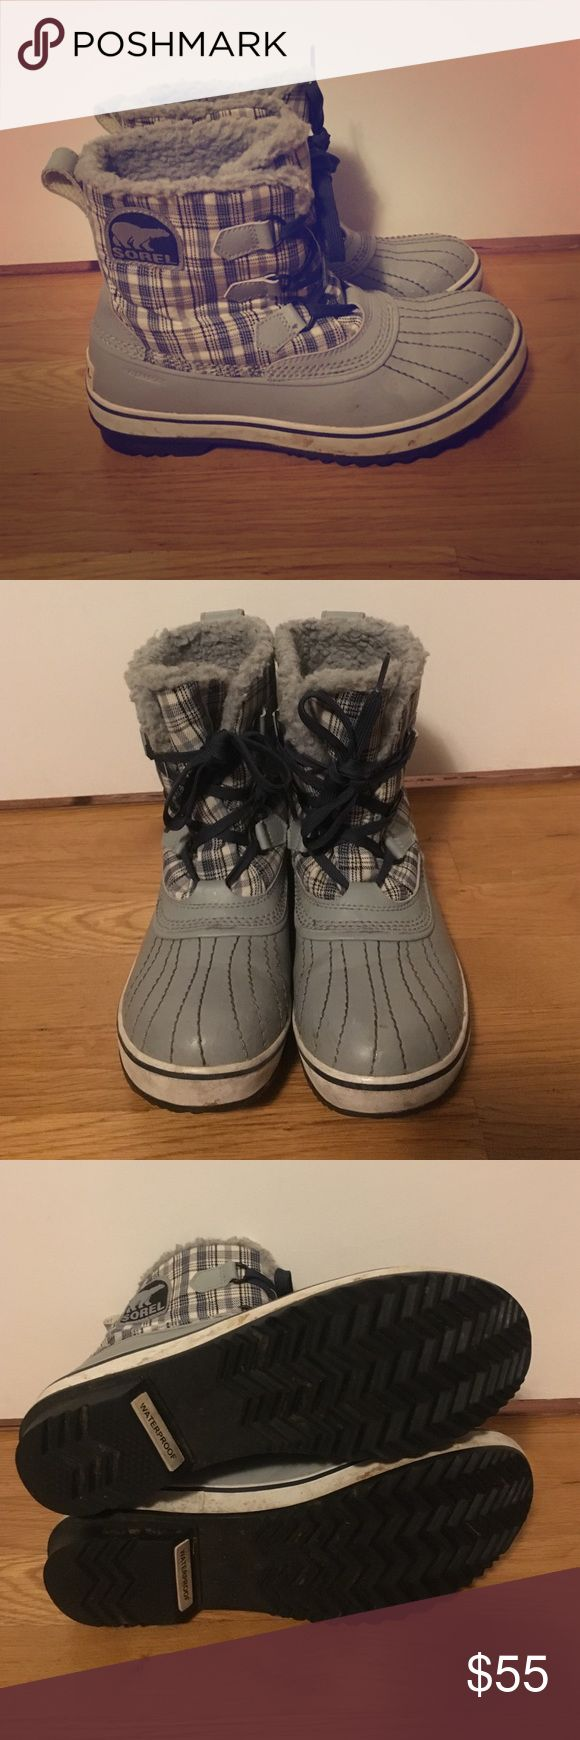 Sorel rain boots Comfortable and waterproof! The perfect boot for rainy hikes, stomping in puddles, and marching in the snow. These are lightly loved but have many more years left on them. Just a few dirt stains as shown in pics. Fits true to size. ☔️ SOREL Shoes Winter & Rain Boots